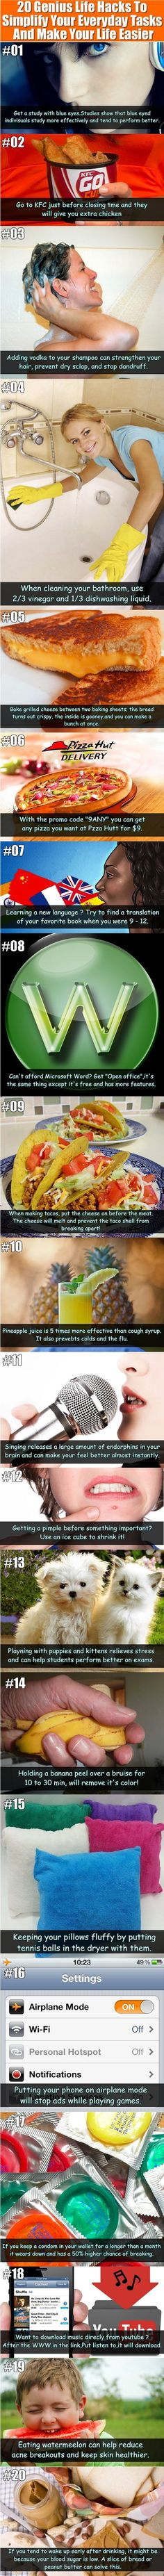 Unethical Life Hacks Life Hax Pinterest Life Hacks - 20 life hacks really shouldnt try